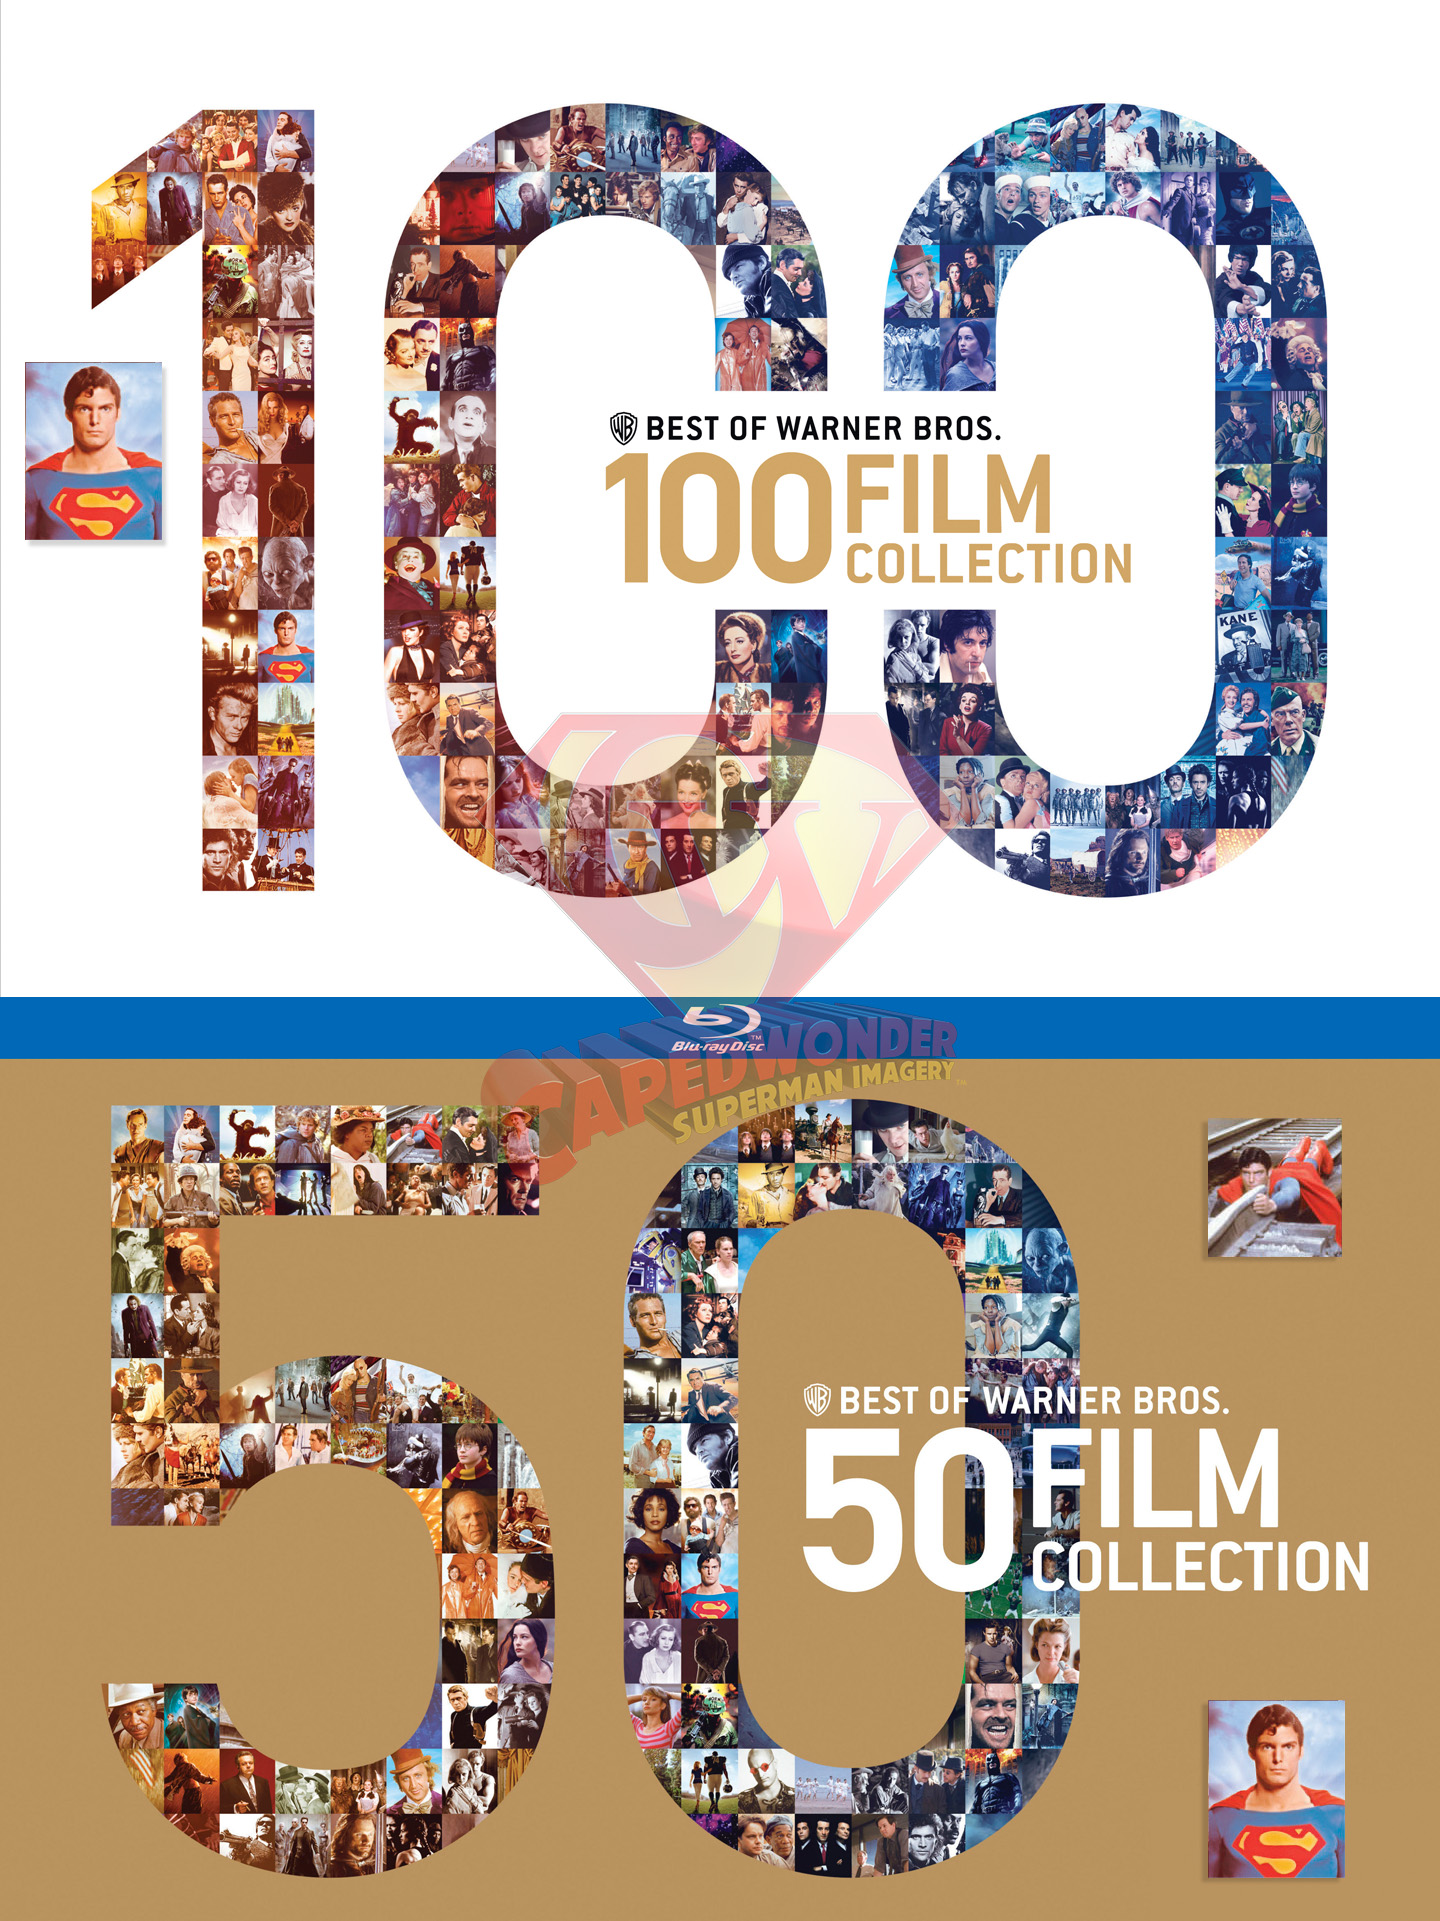 Warner Bros. 90th Anniversary DVD and Blu-ray collection slipcase covers.